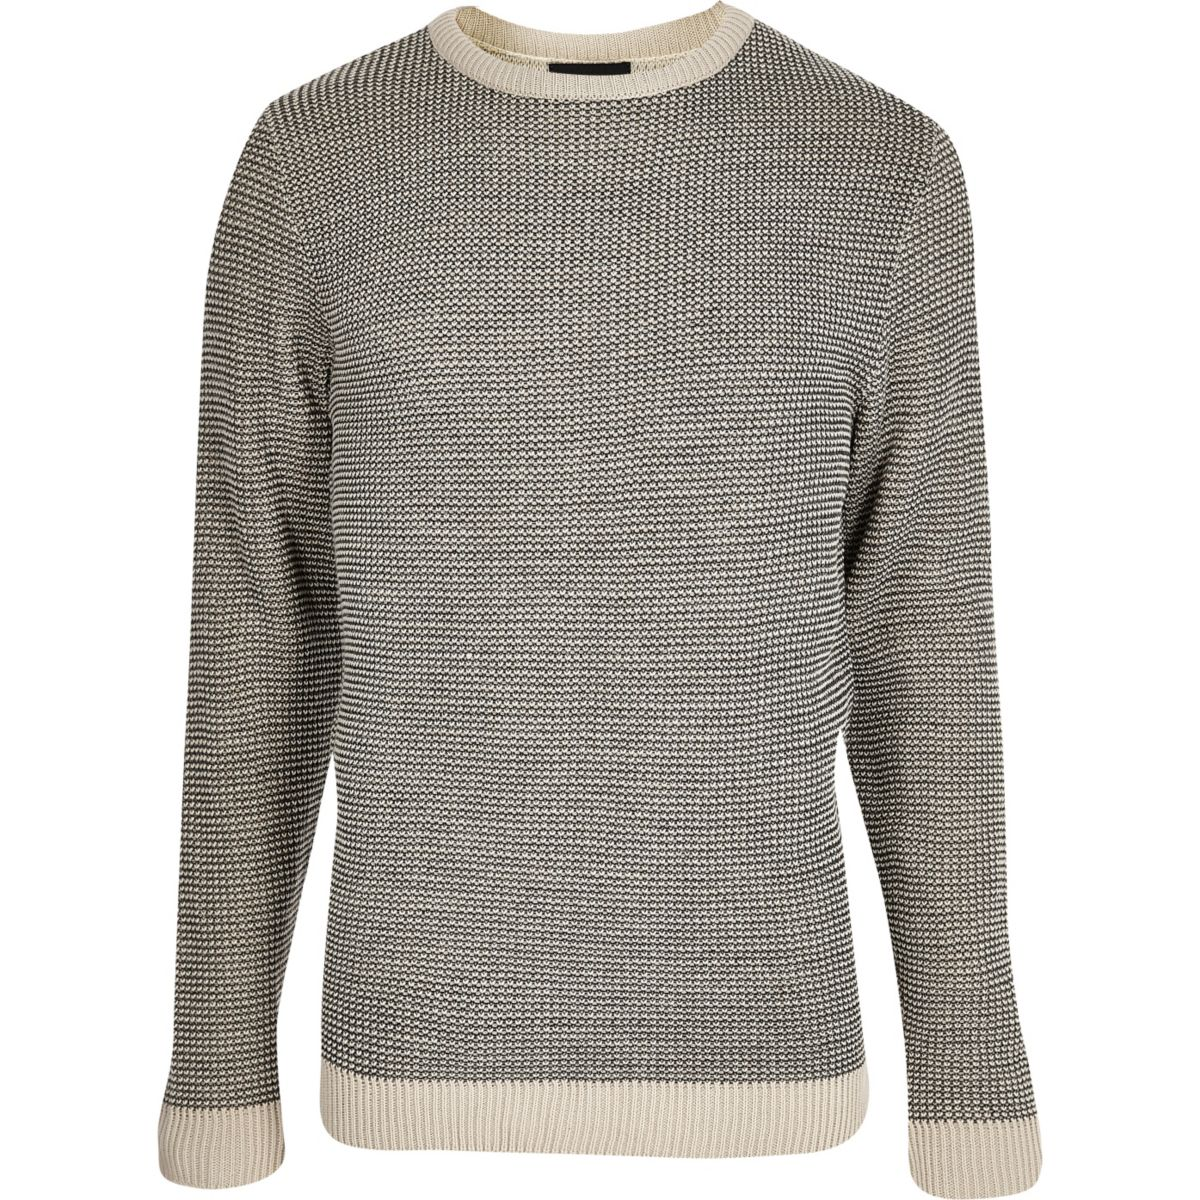 Grey and cream textured knit slim fit jumper